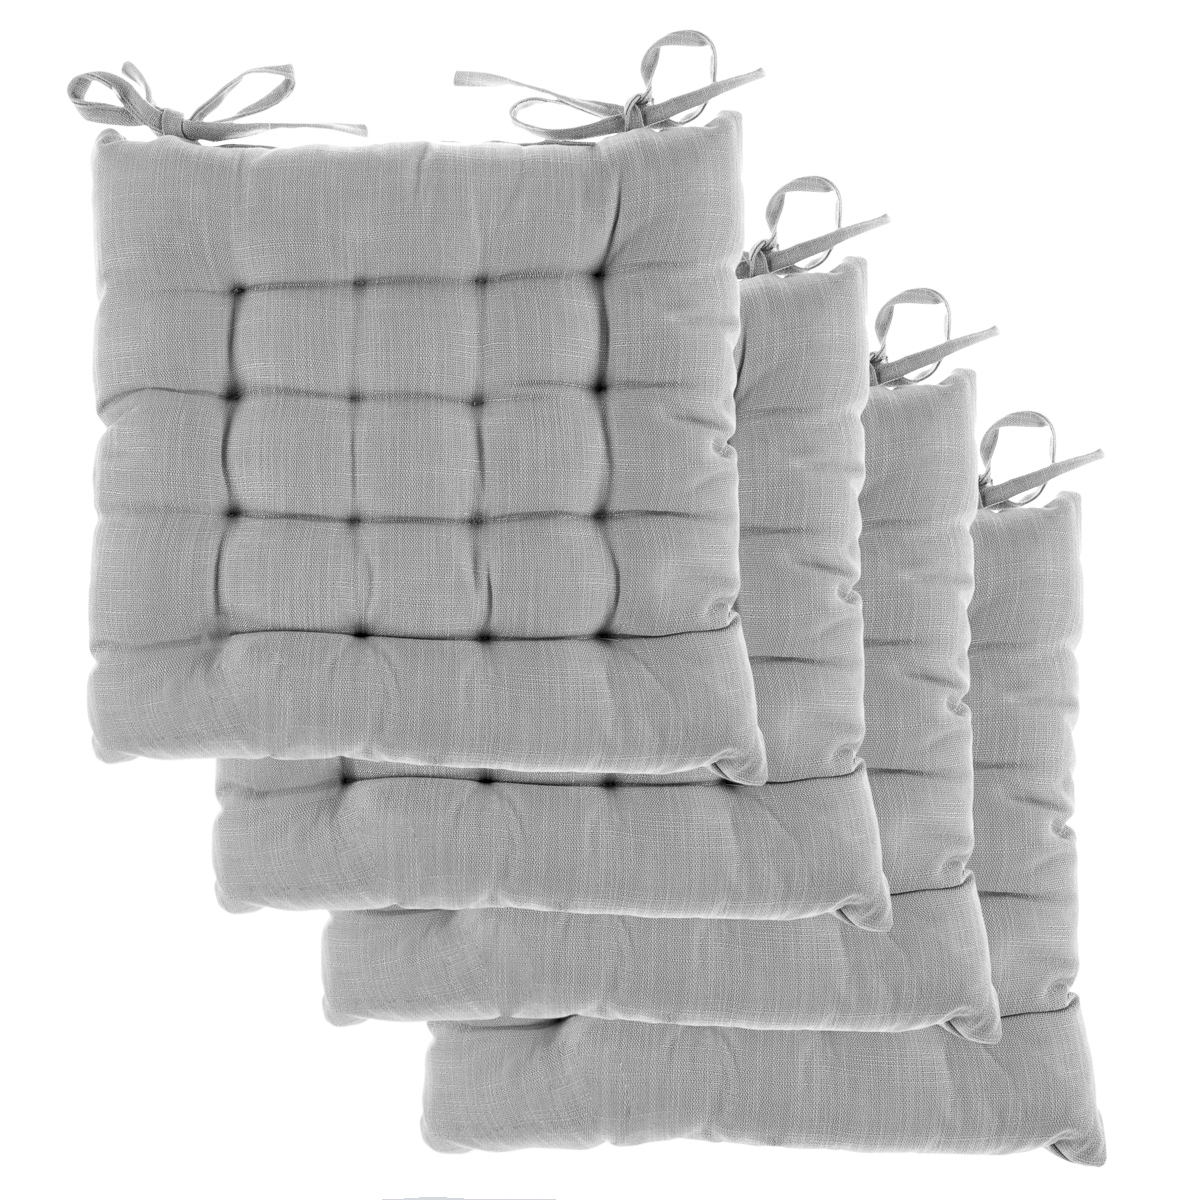 4pk Dream Home Chair Pads Square Tufted Cushion Seat